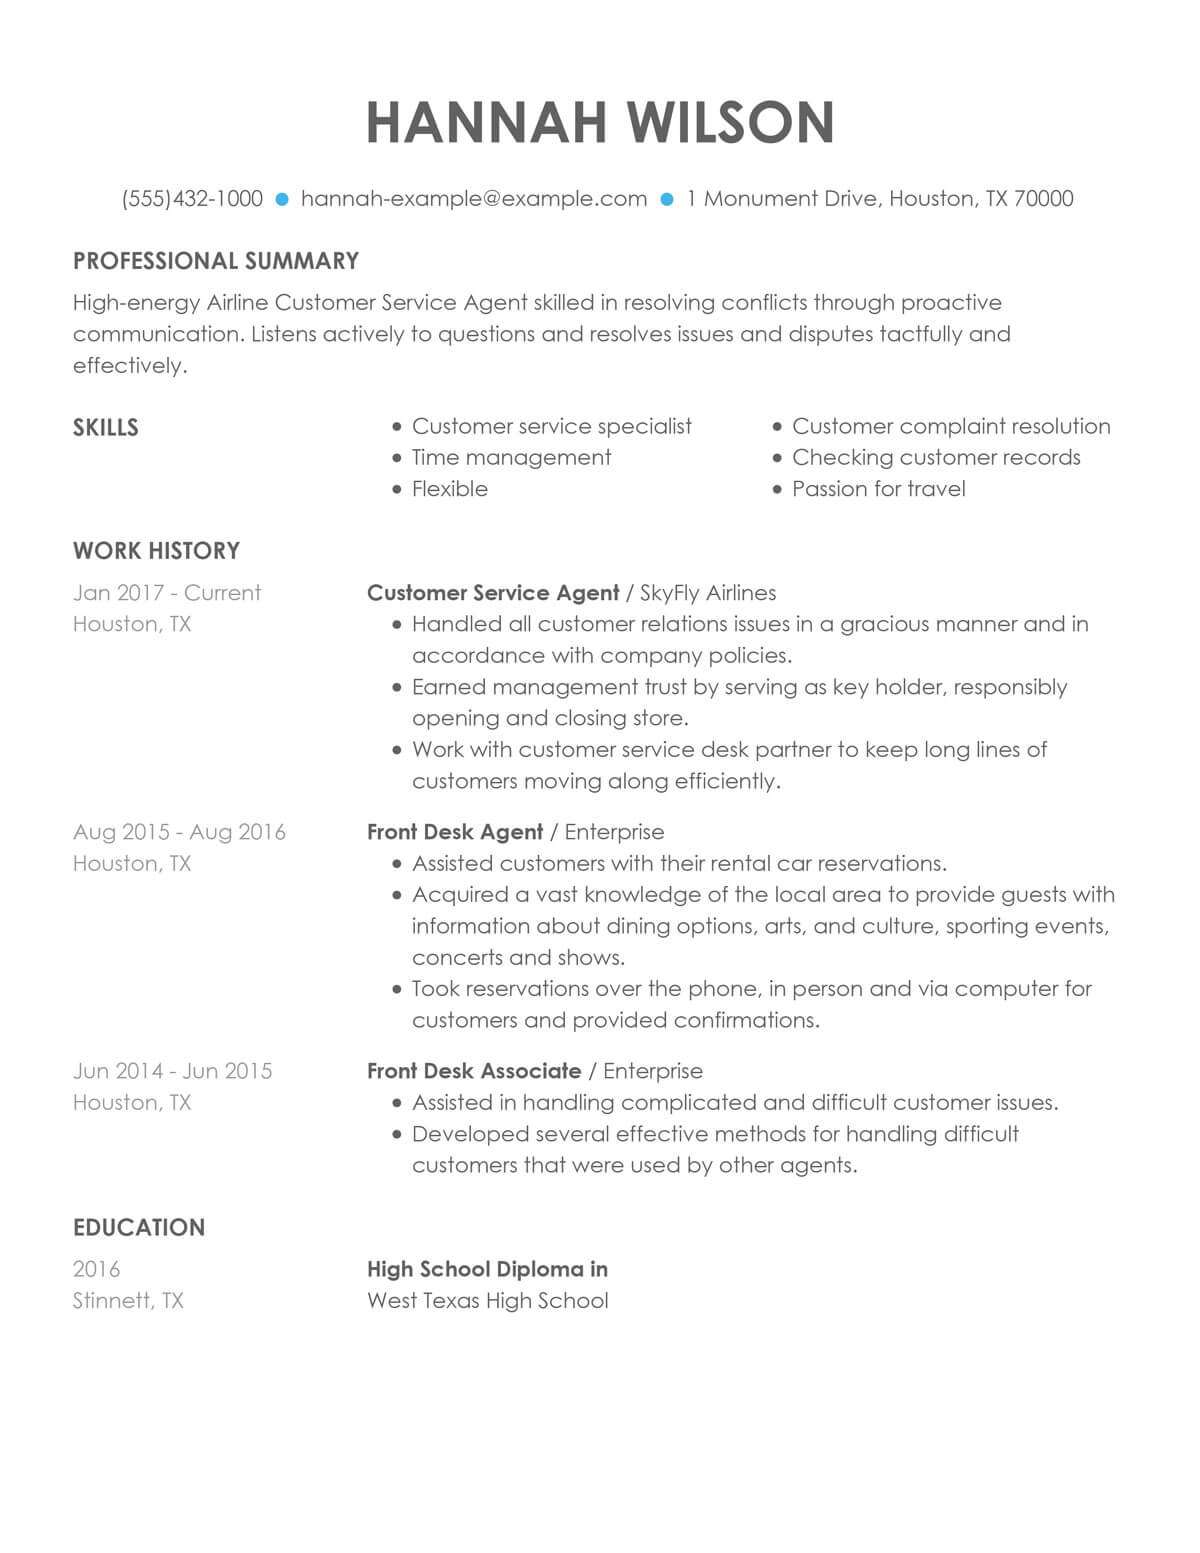 customize our customer representative resume example build phone number airline service Resume Build Resume Phone Number